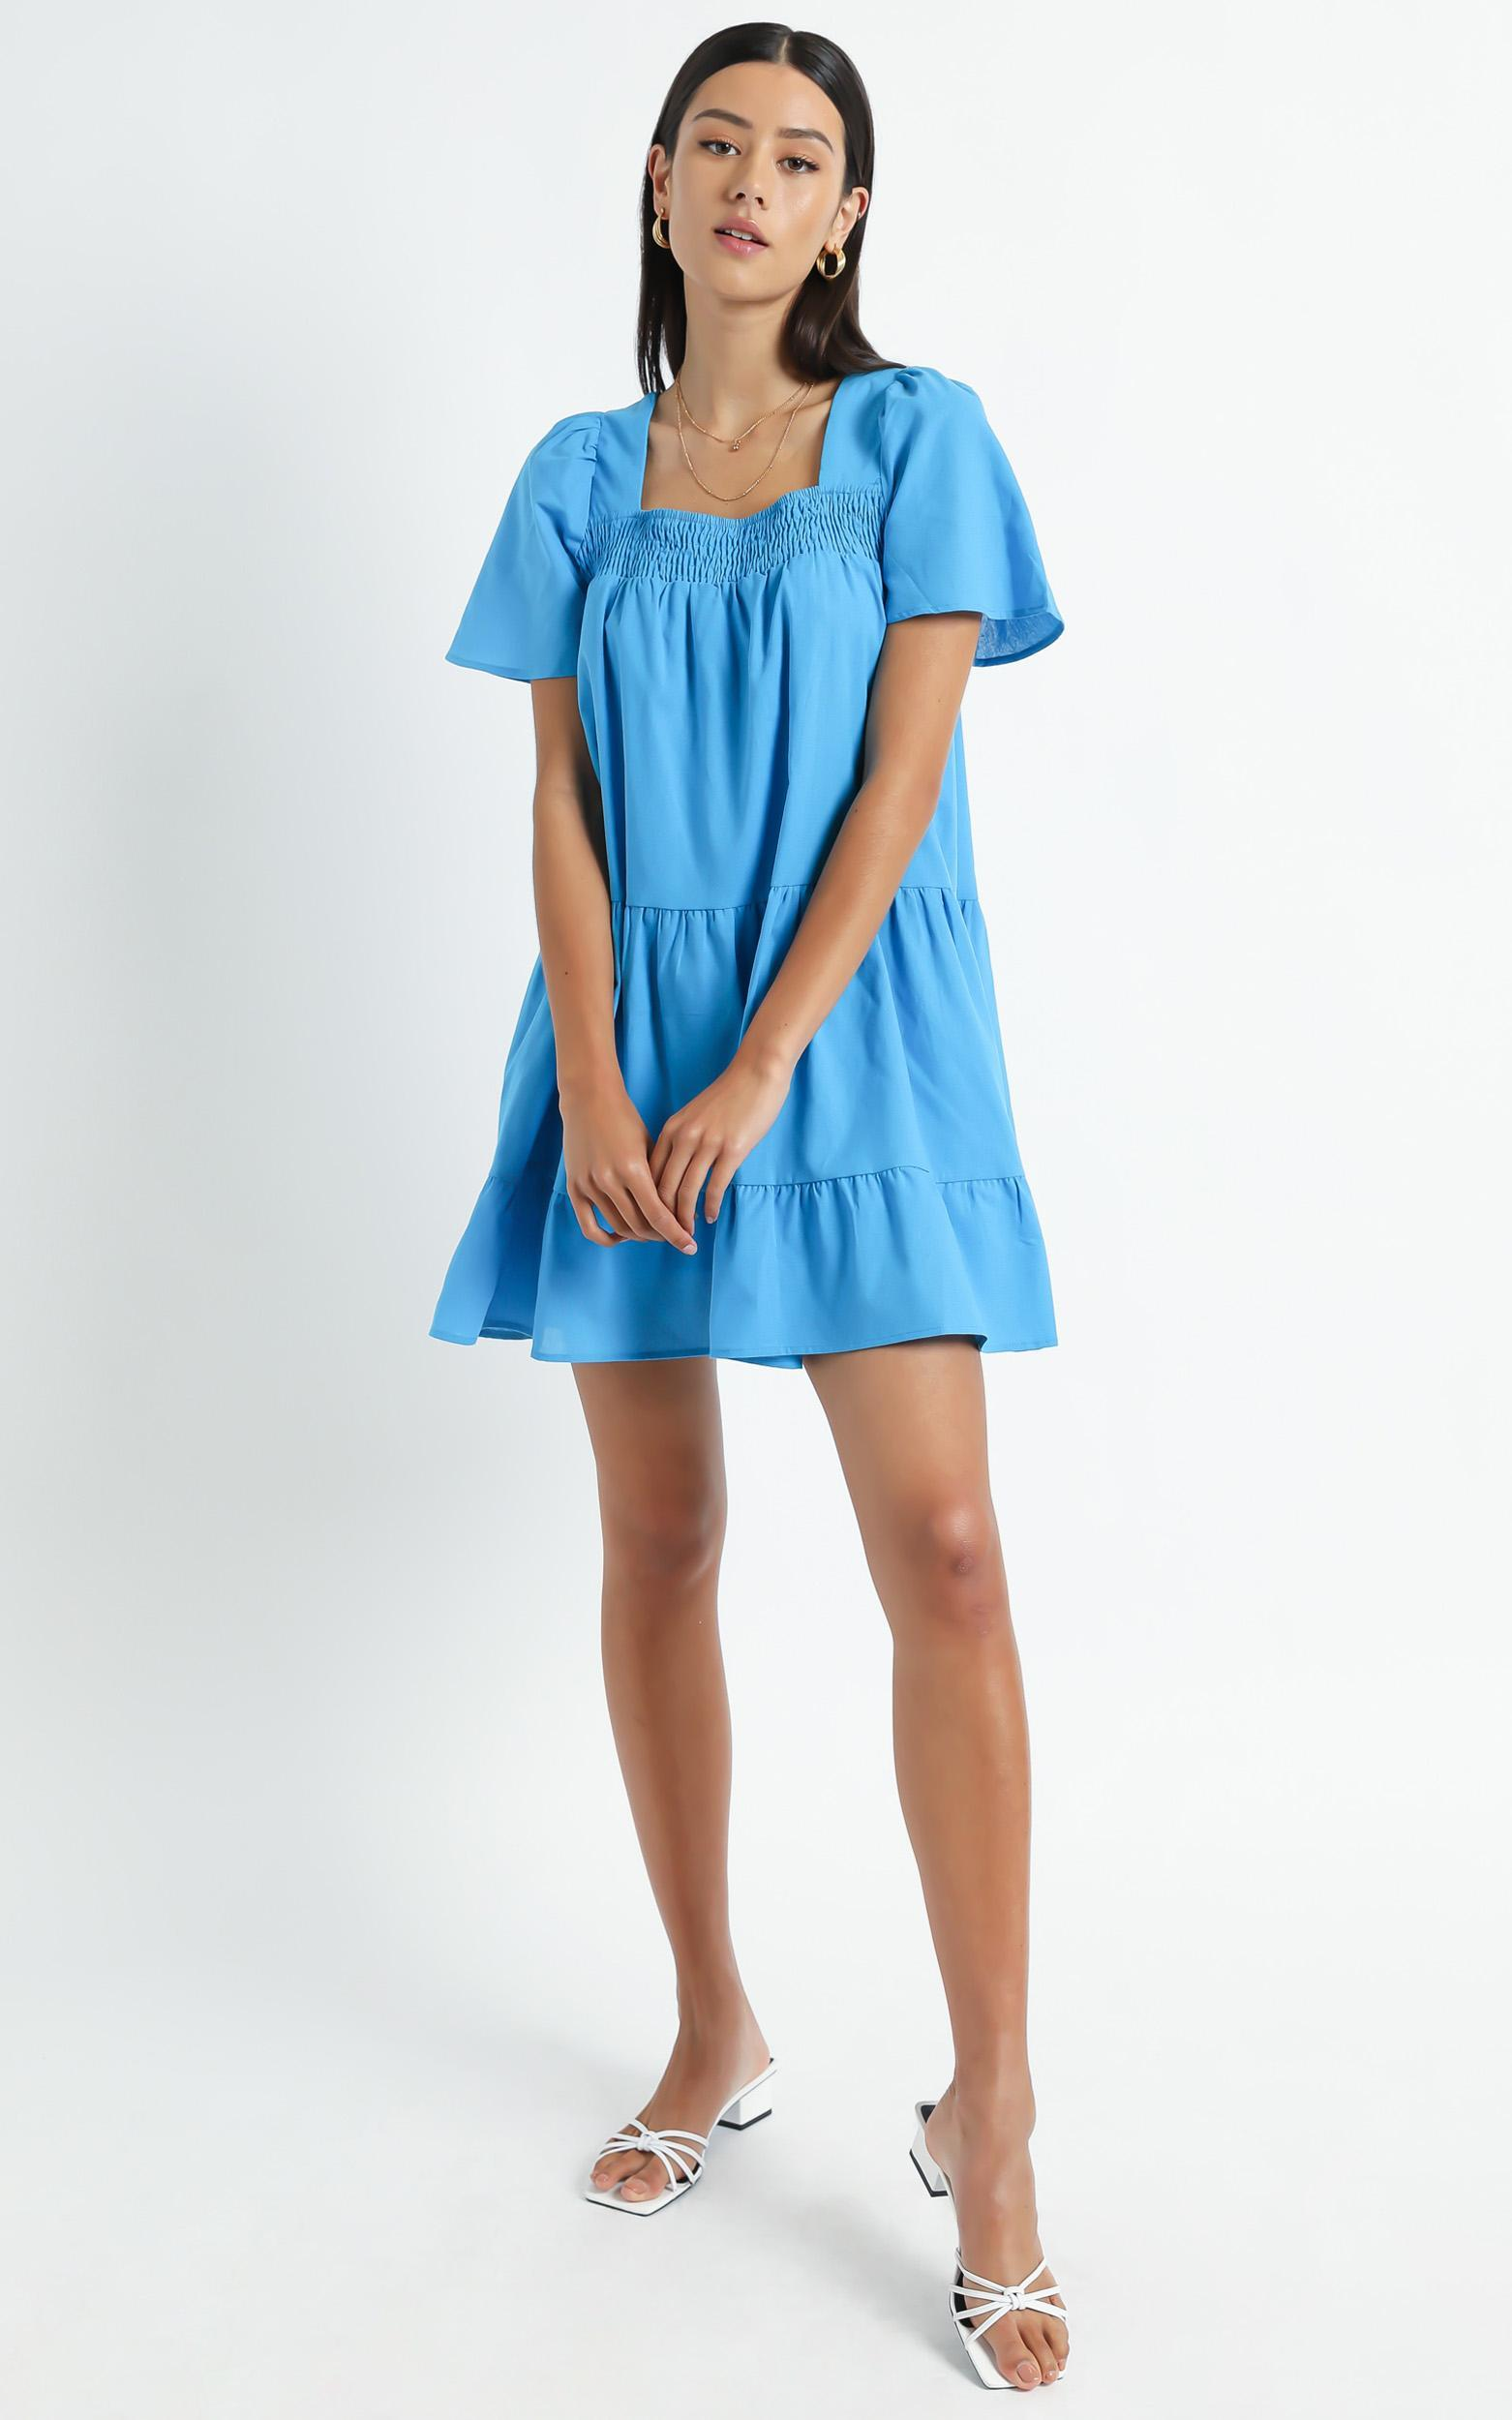 Donya Dress in Blue - 6 (XS), Blue, hi-res image number null